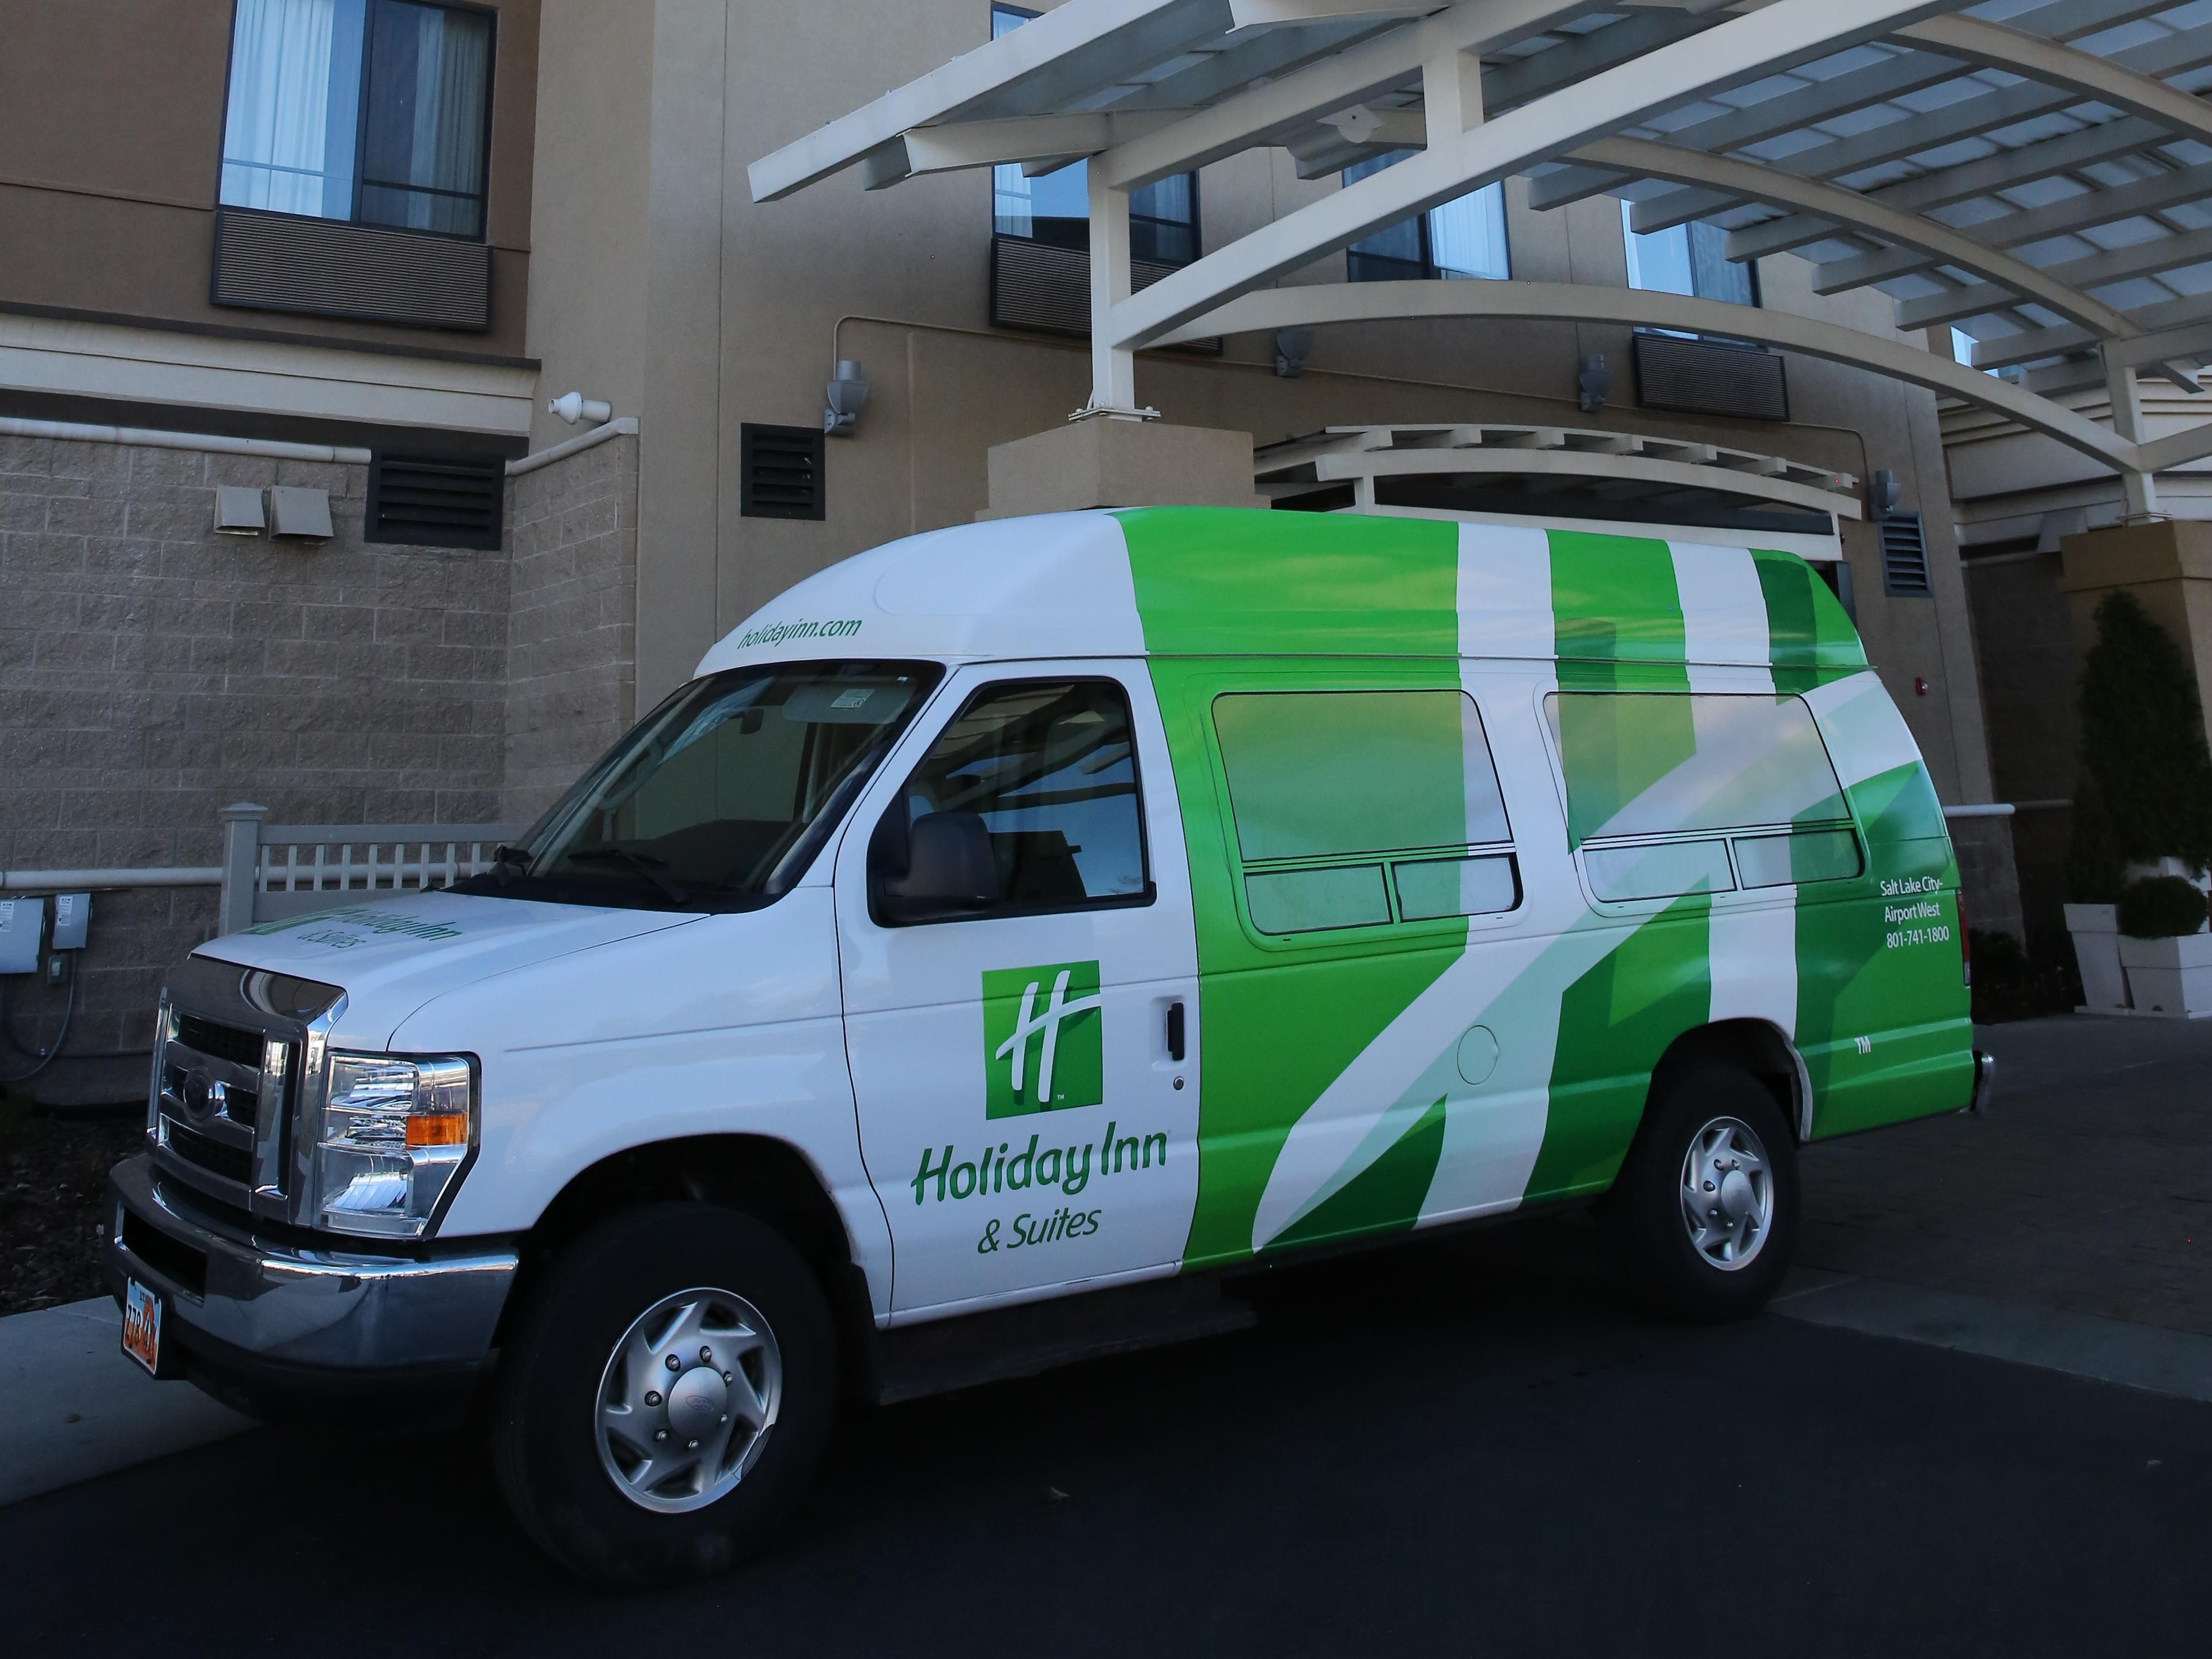 Our airport shuttle is available daily from 4 AM - Midnight